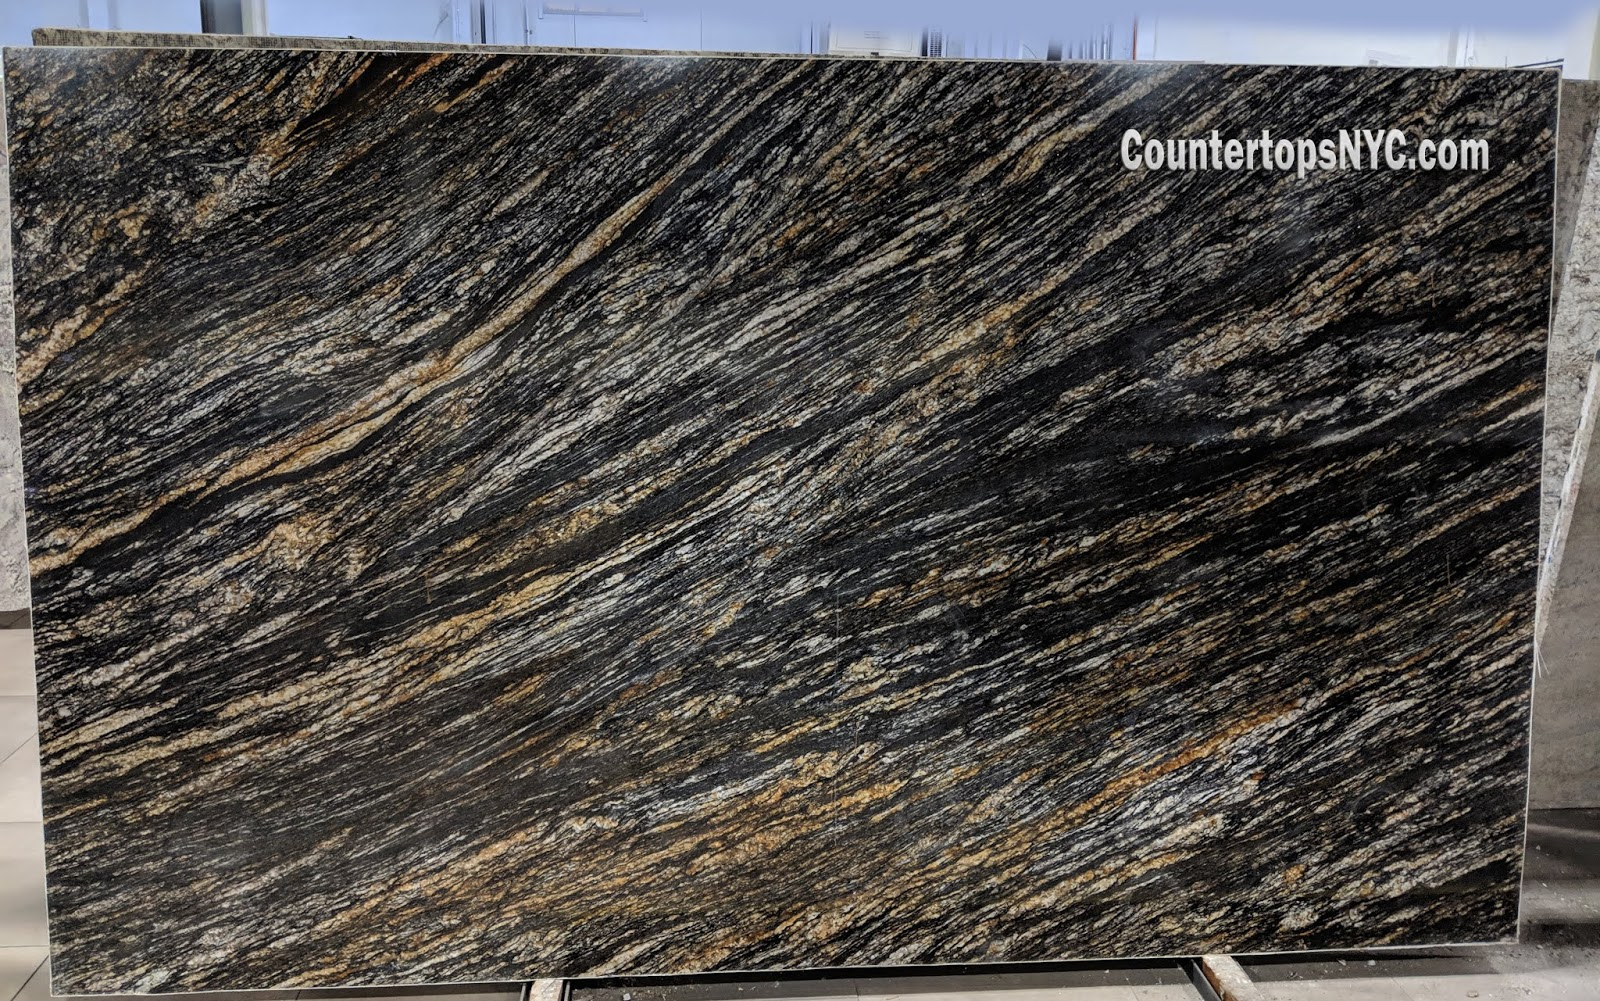 Hidden Treasure Black Granite Countertops NYC